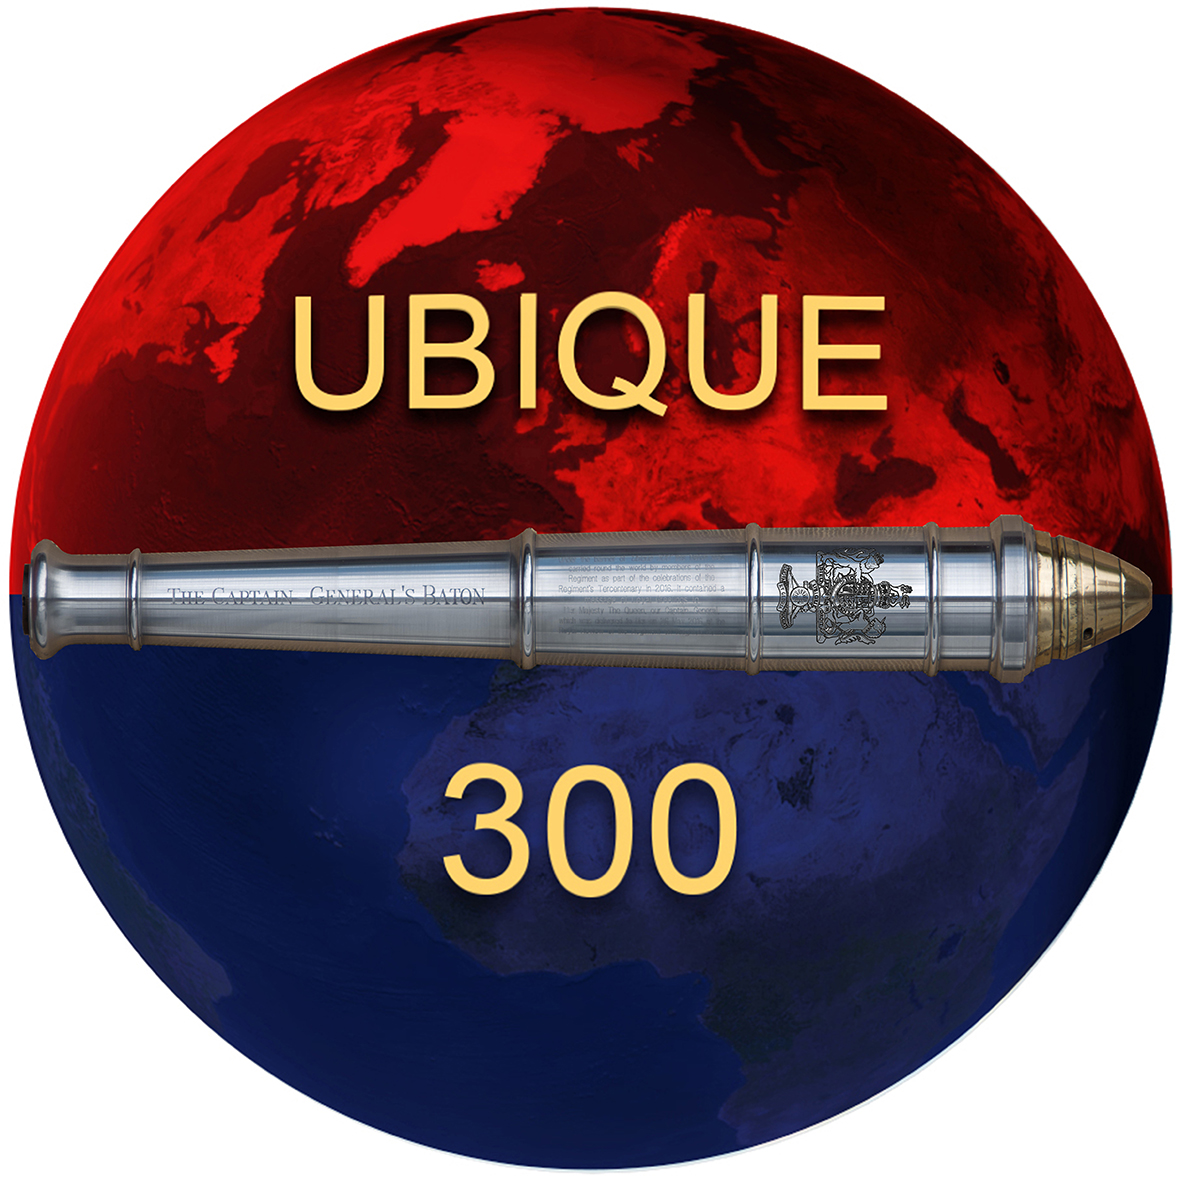 Ubique 300 - Zone 1 -  Update......